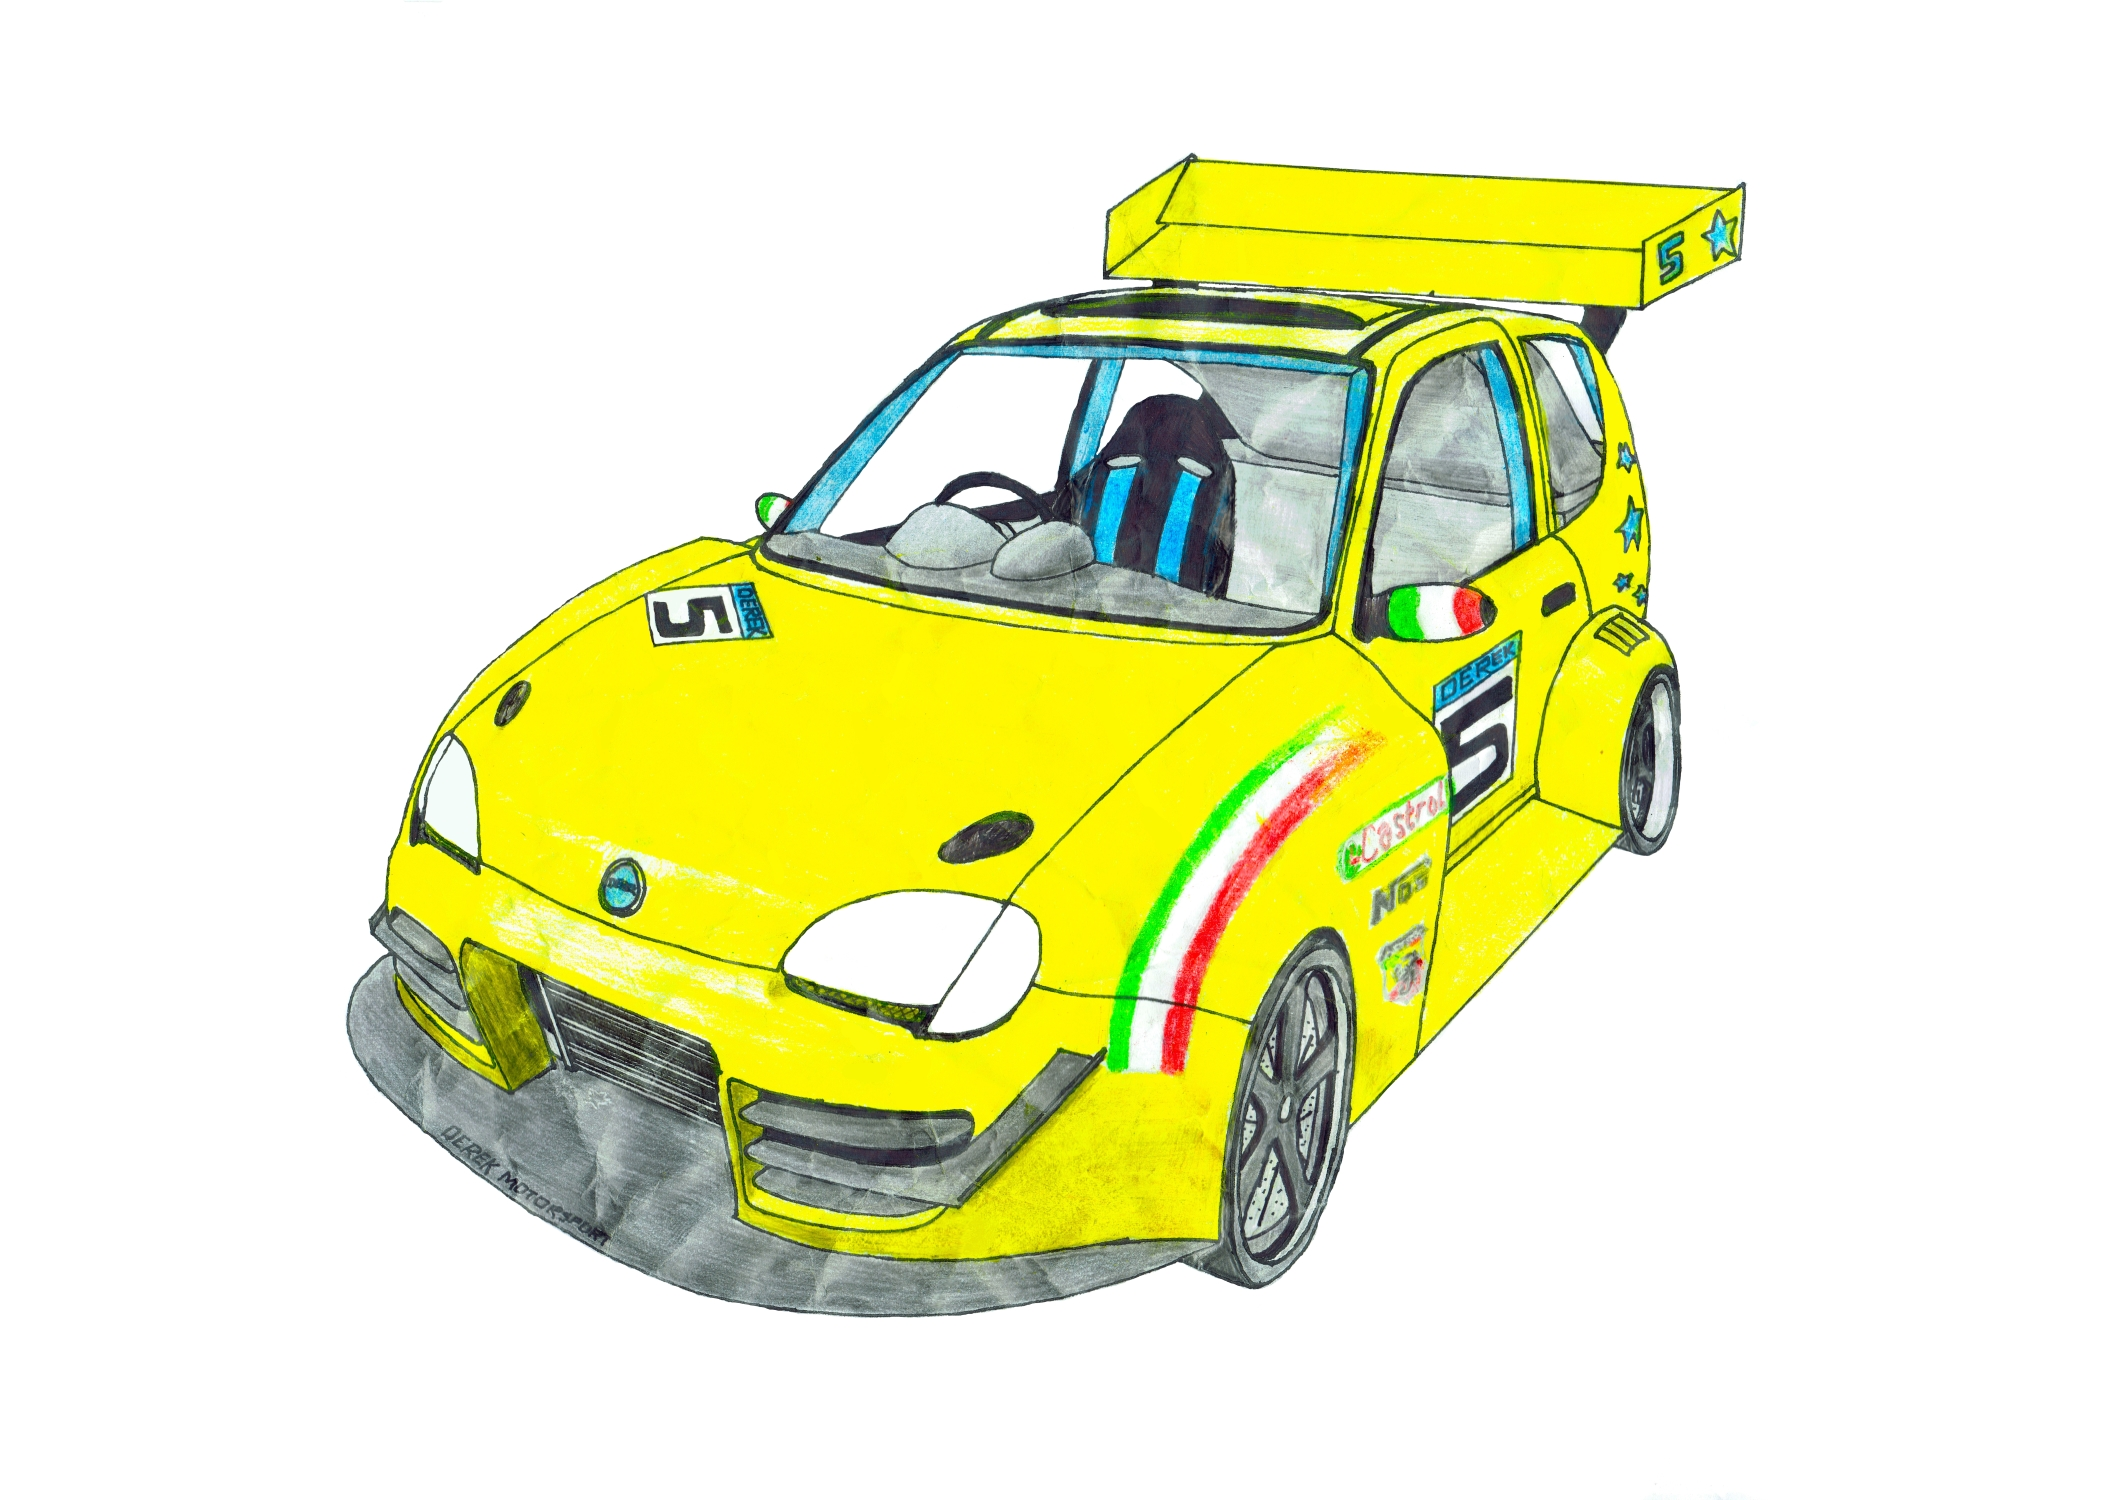 0_1508955277327_Seicento Racing Front 3.jpg